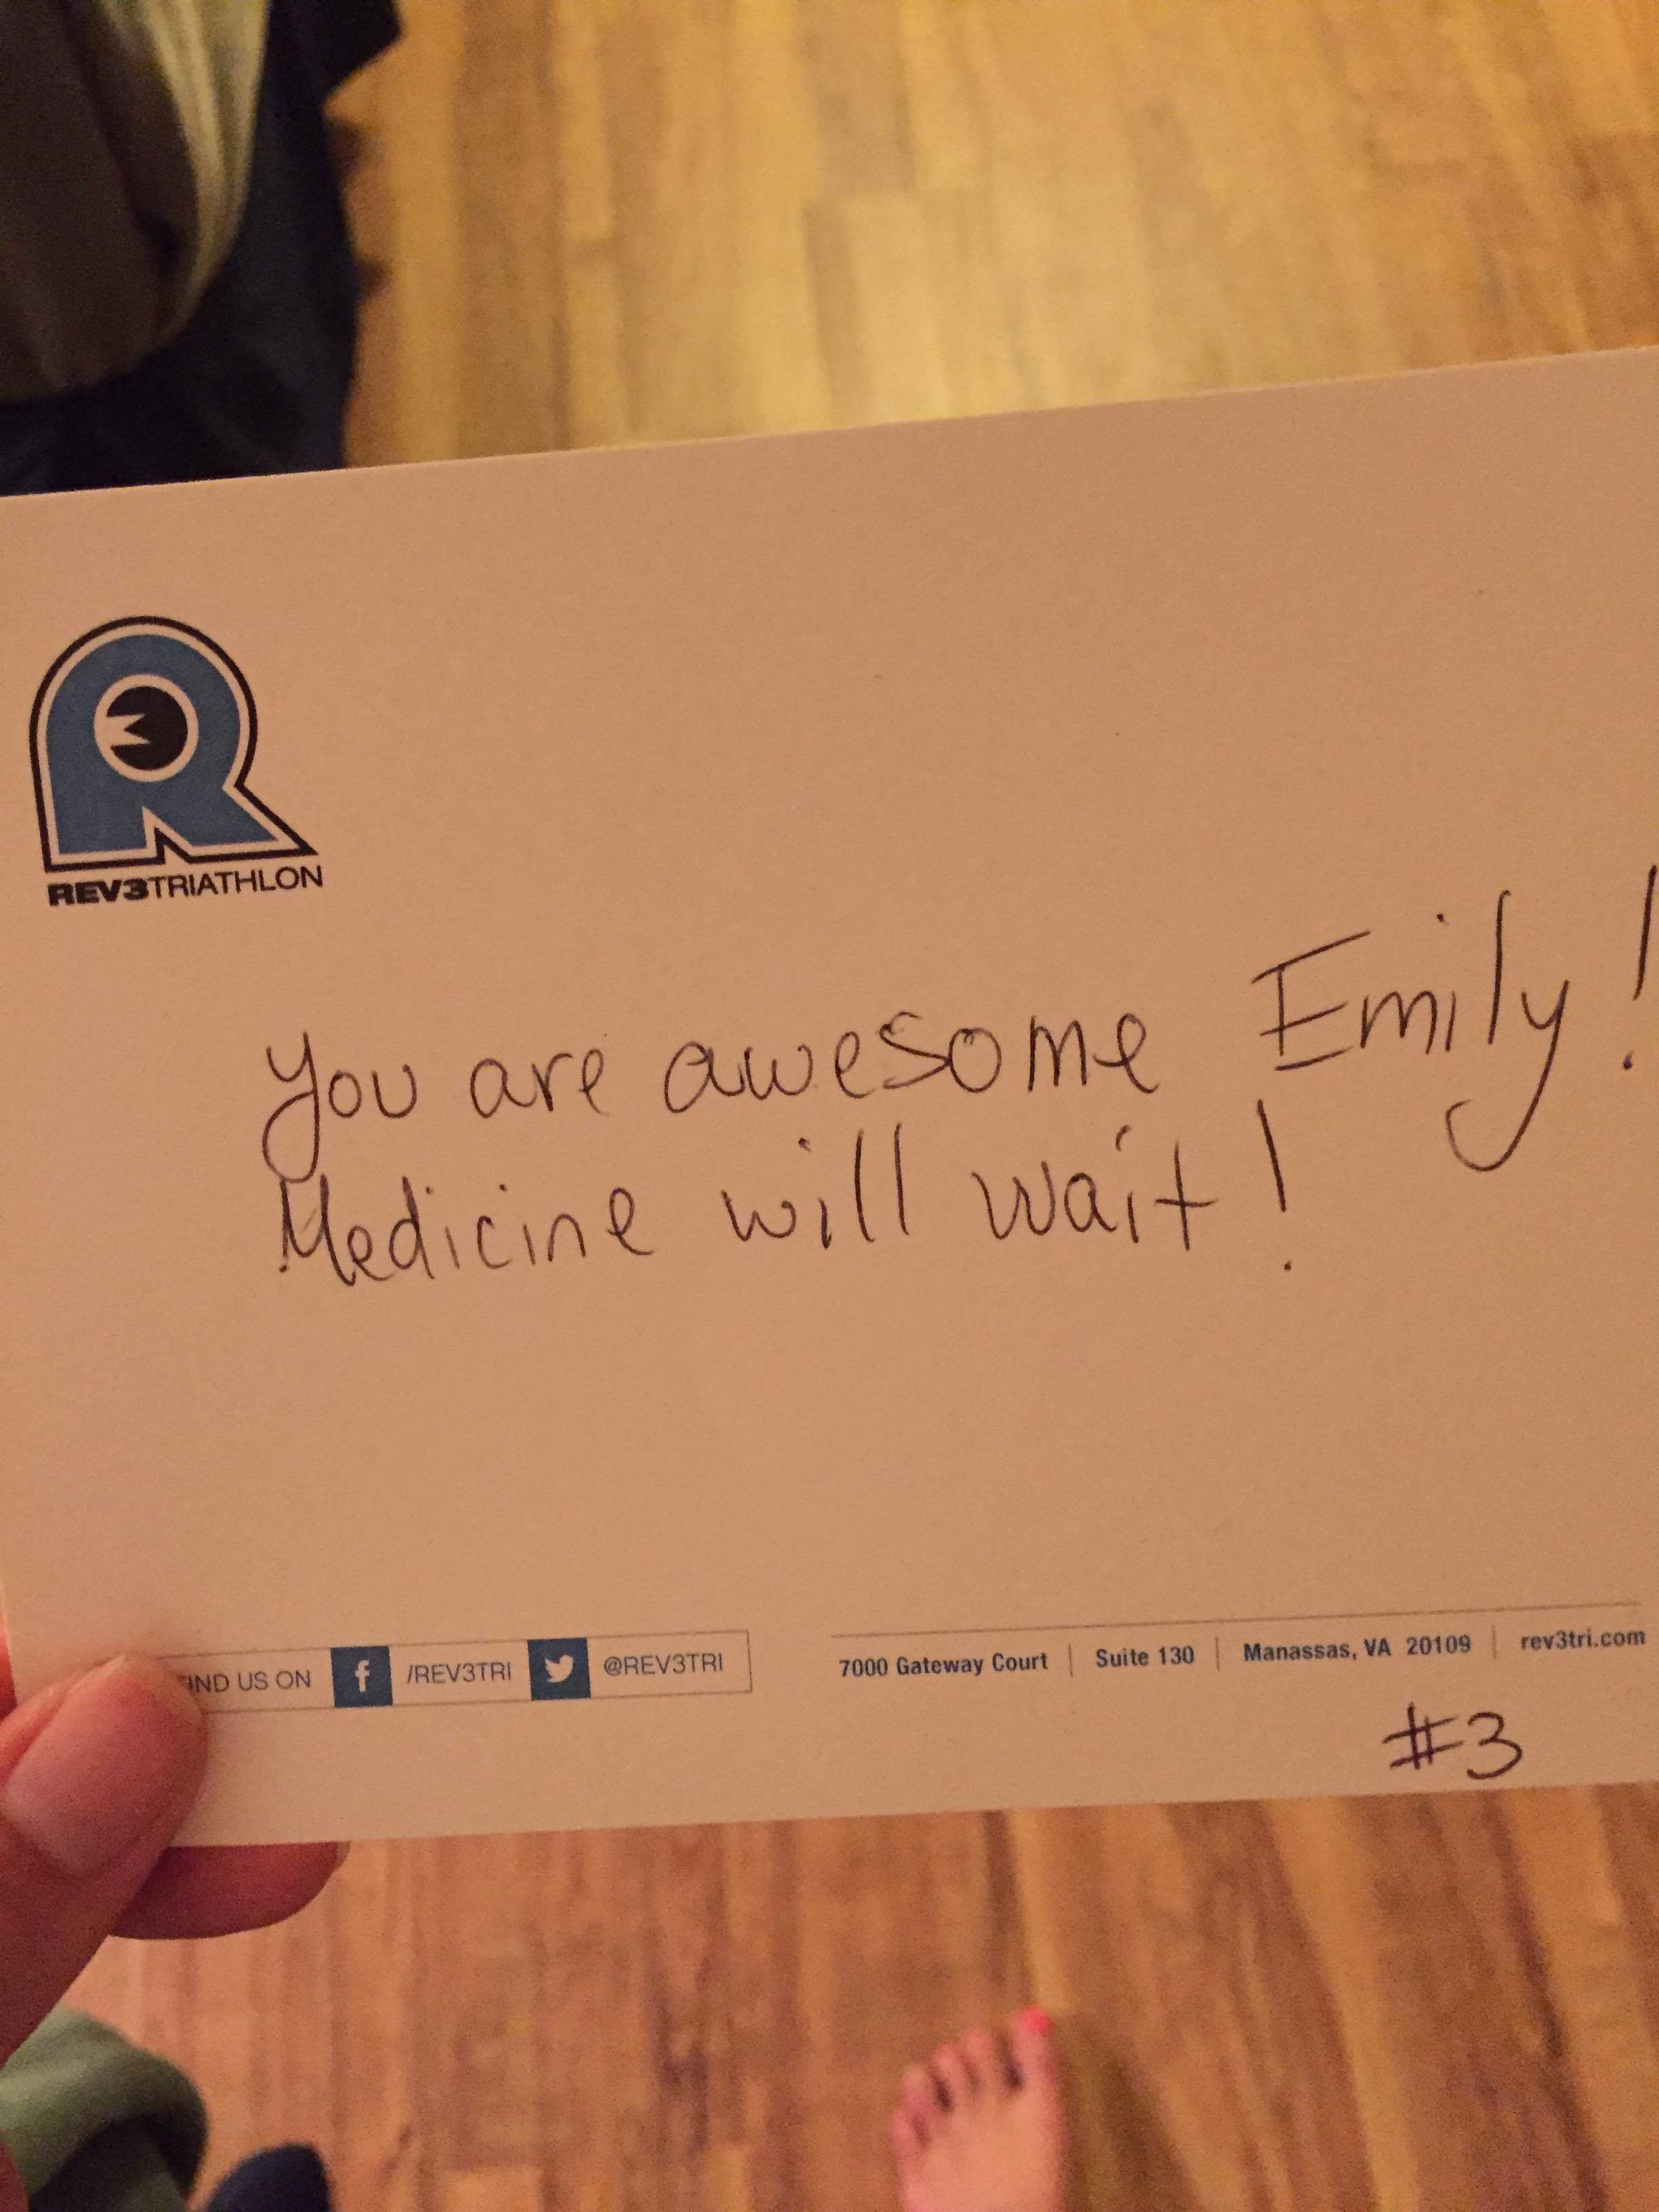 The note just melted my heart and lifted my spirits. Thank you  Rev3 Triathlon.